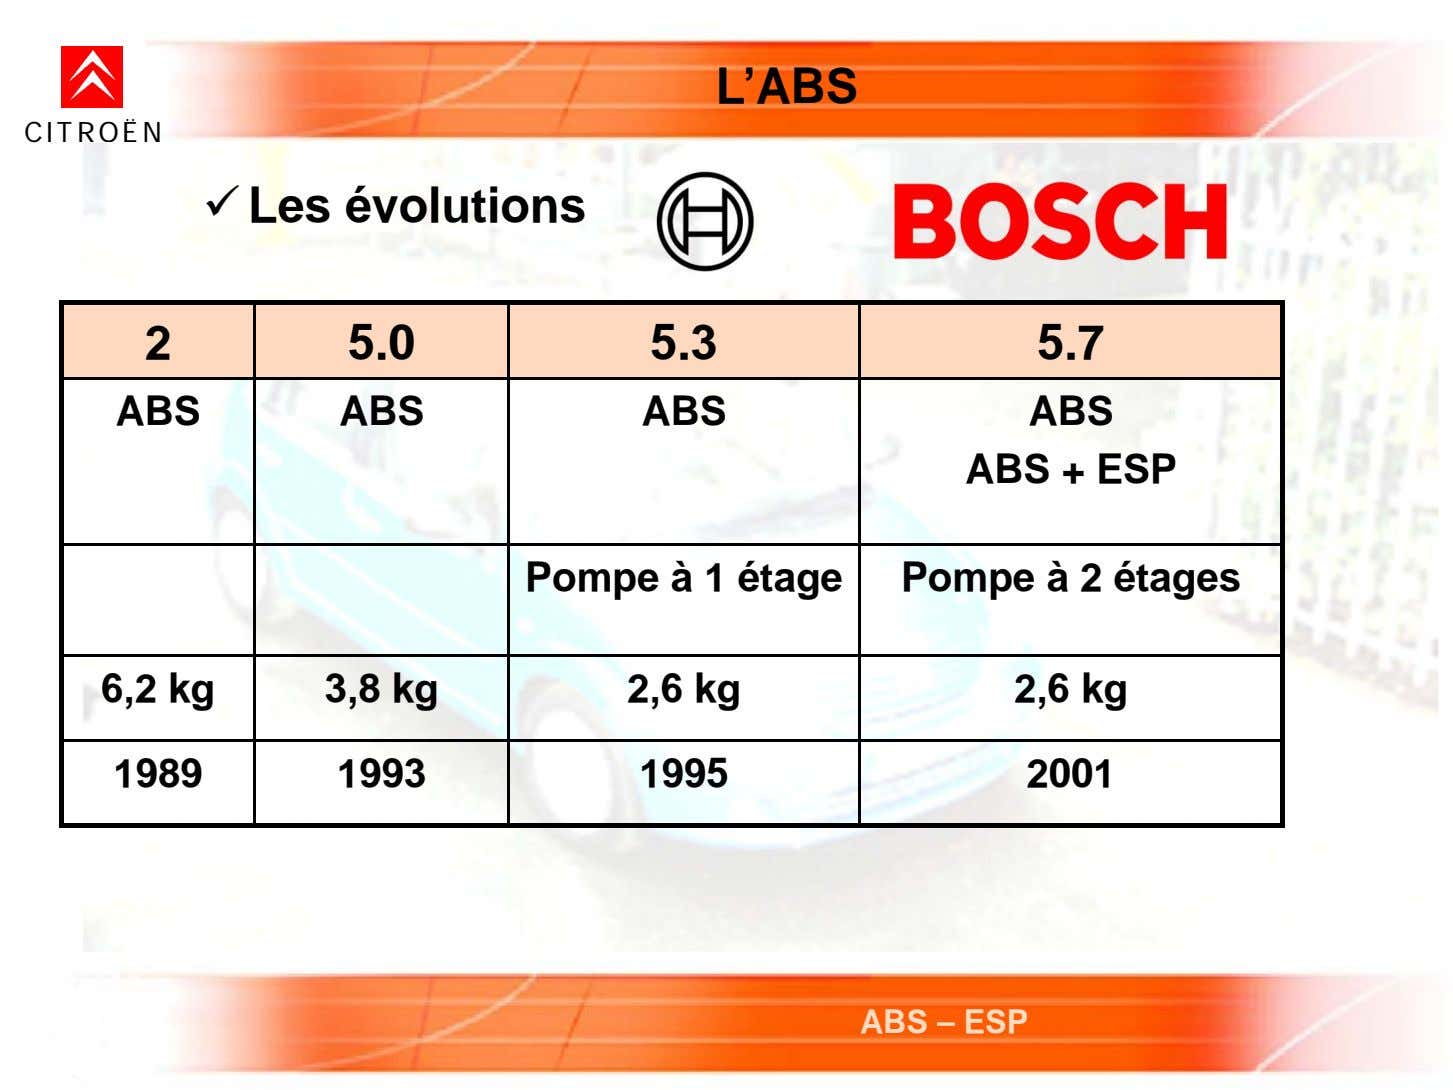 L'ABS CITROËN  Les évolutions 2 5.0 5.3 5.7 ABS ABS ABS ABS ABS +